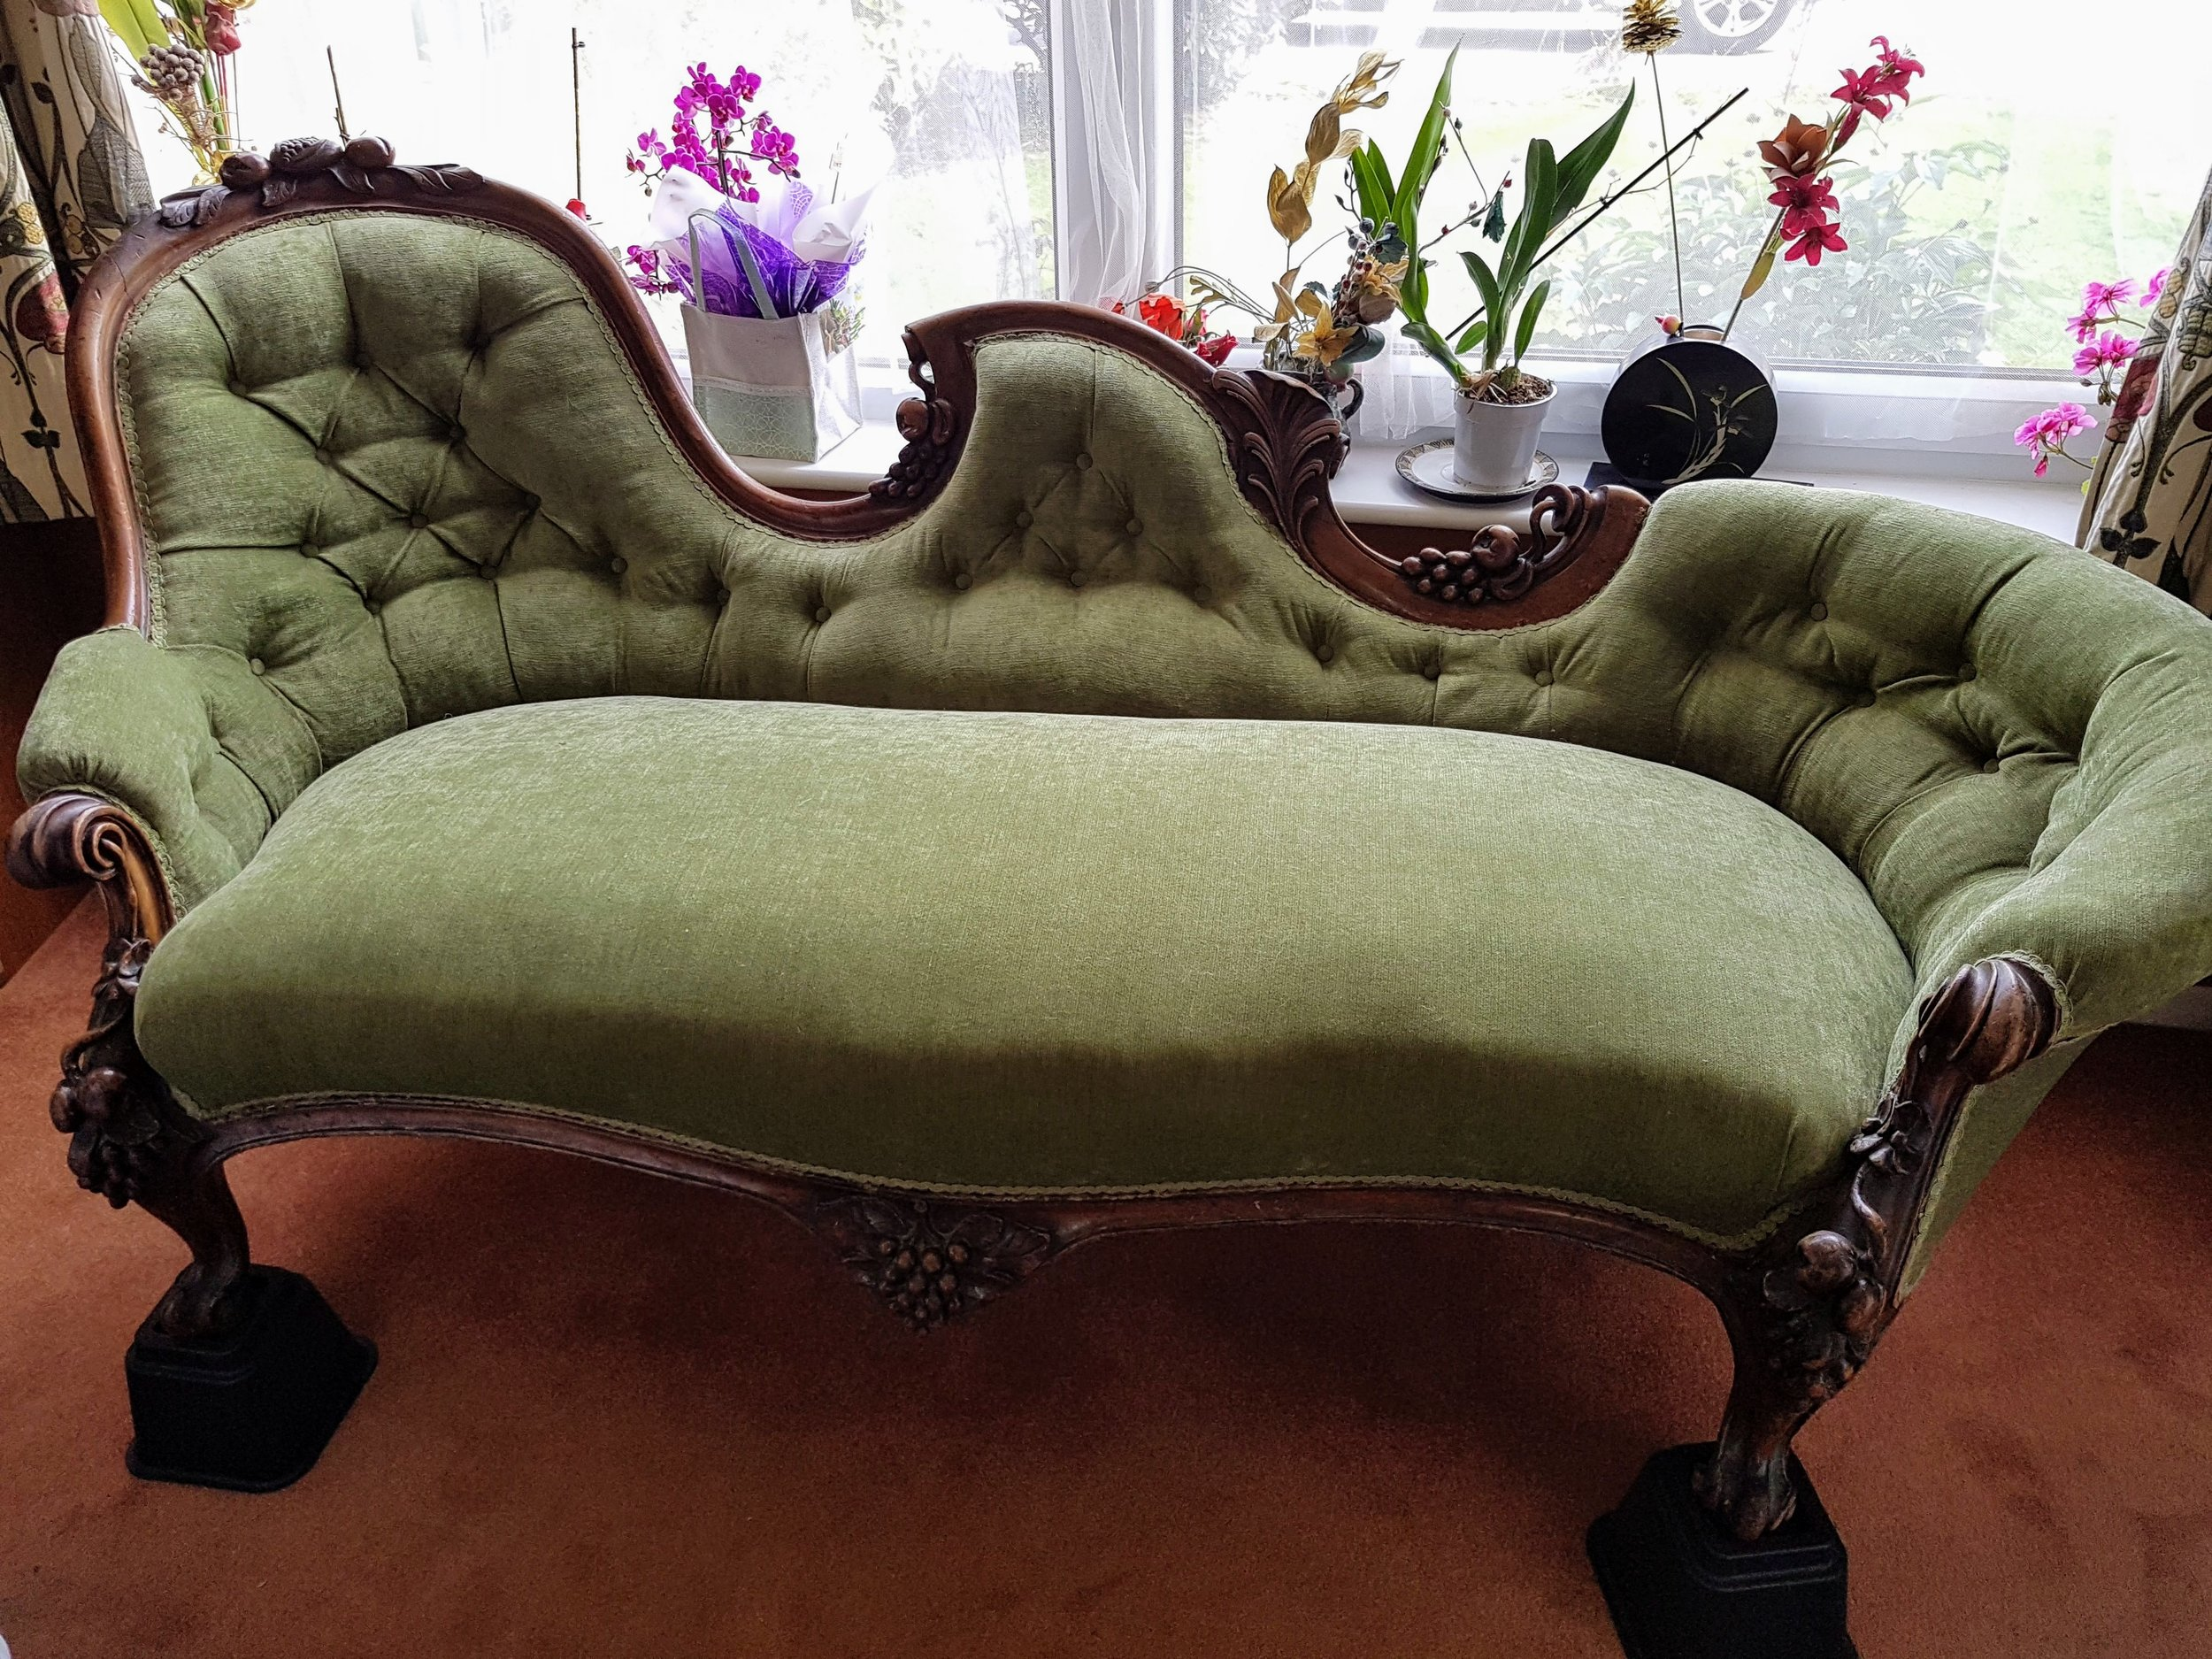 19th Century French Chaise - After